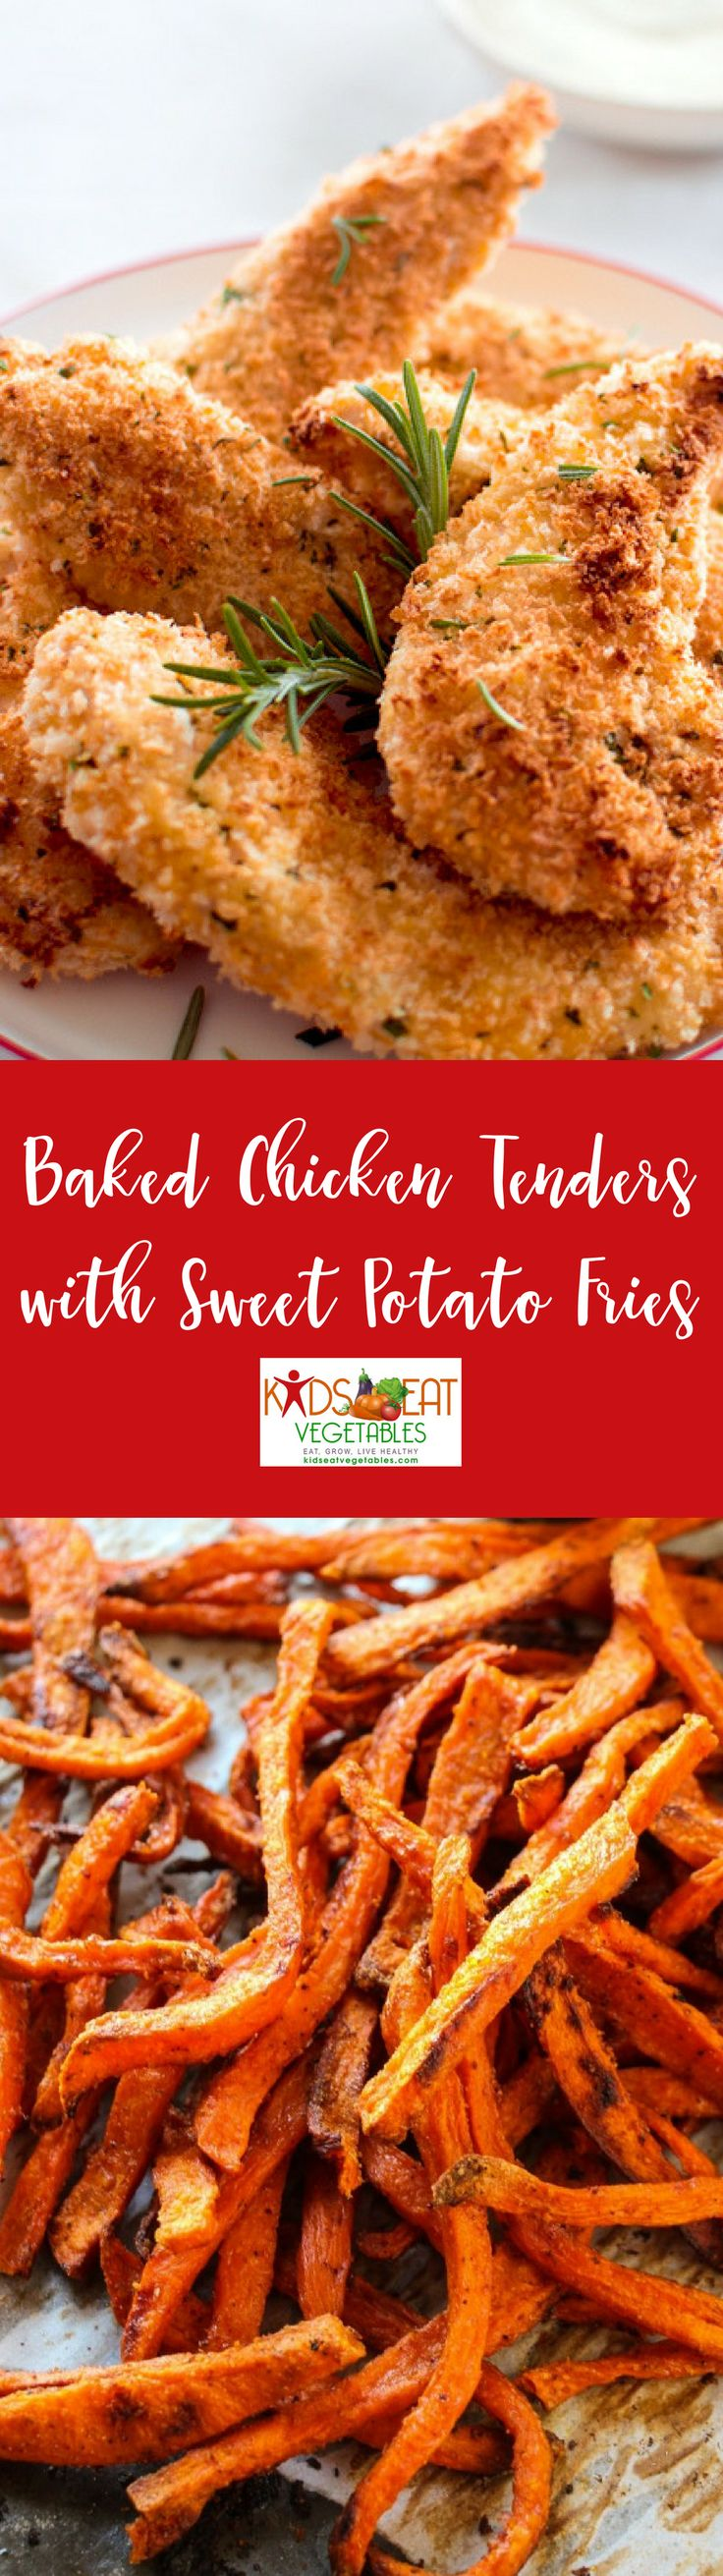 Baked chicken tenders and sweet potato fries are a perfect meal example of simple meals with a twist. Baking instead of frying greatly reduces the amount of fat but yields those signature tastes and textures children love while swapping white potatoes for